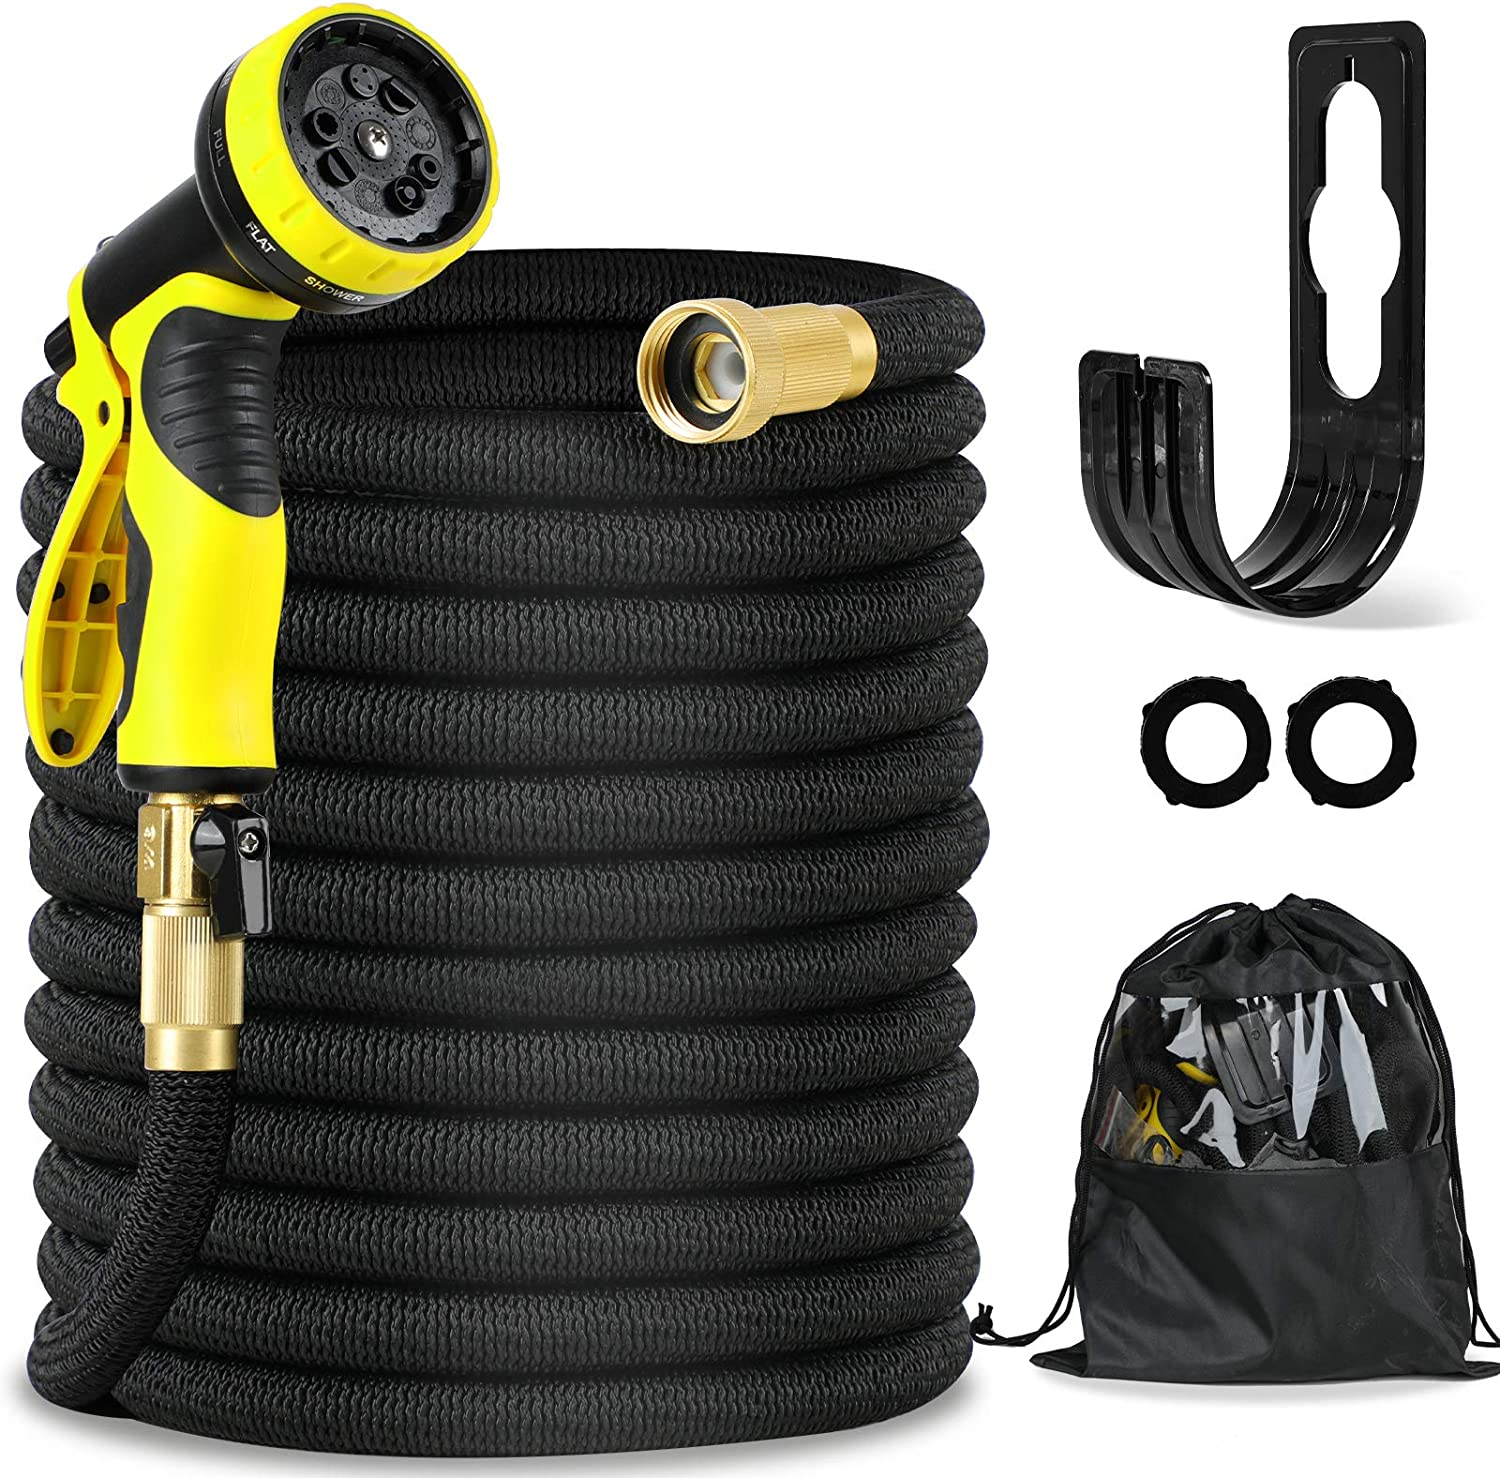 Expandable Garden Hose, 50ft Lightweight Flexible Water Hose, 9 Functions Sprayer with Double Latex Core, 3/4